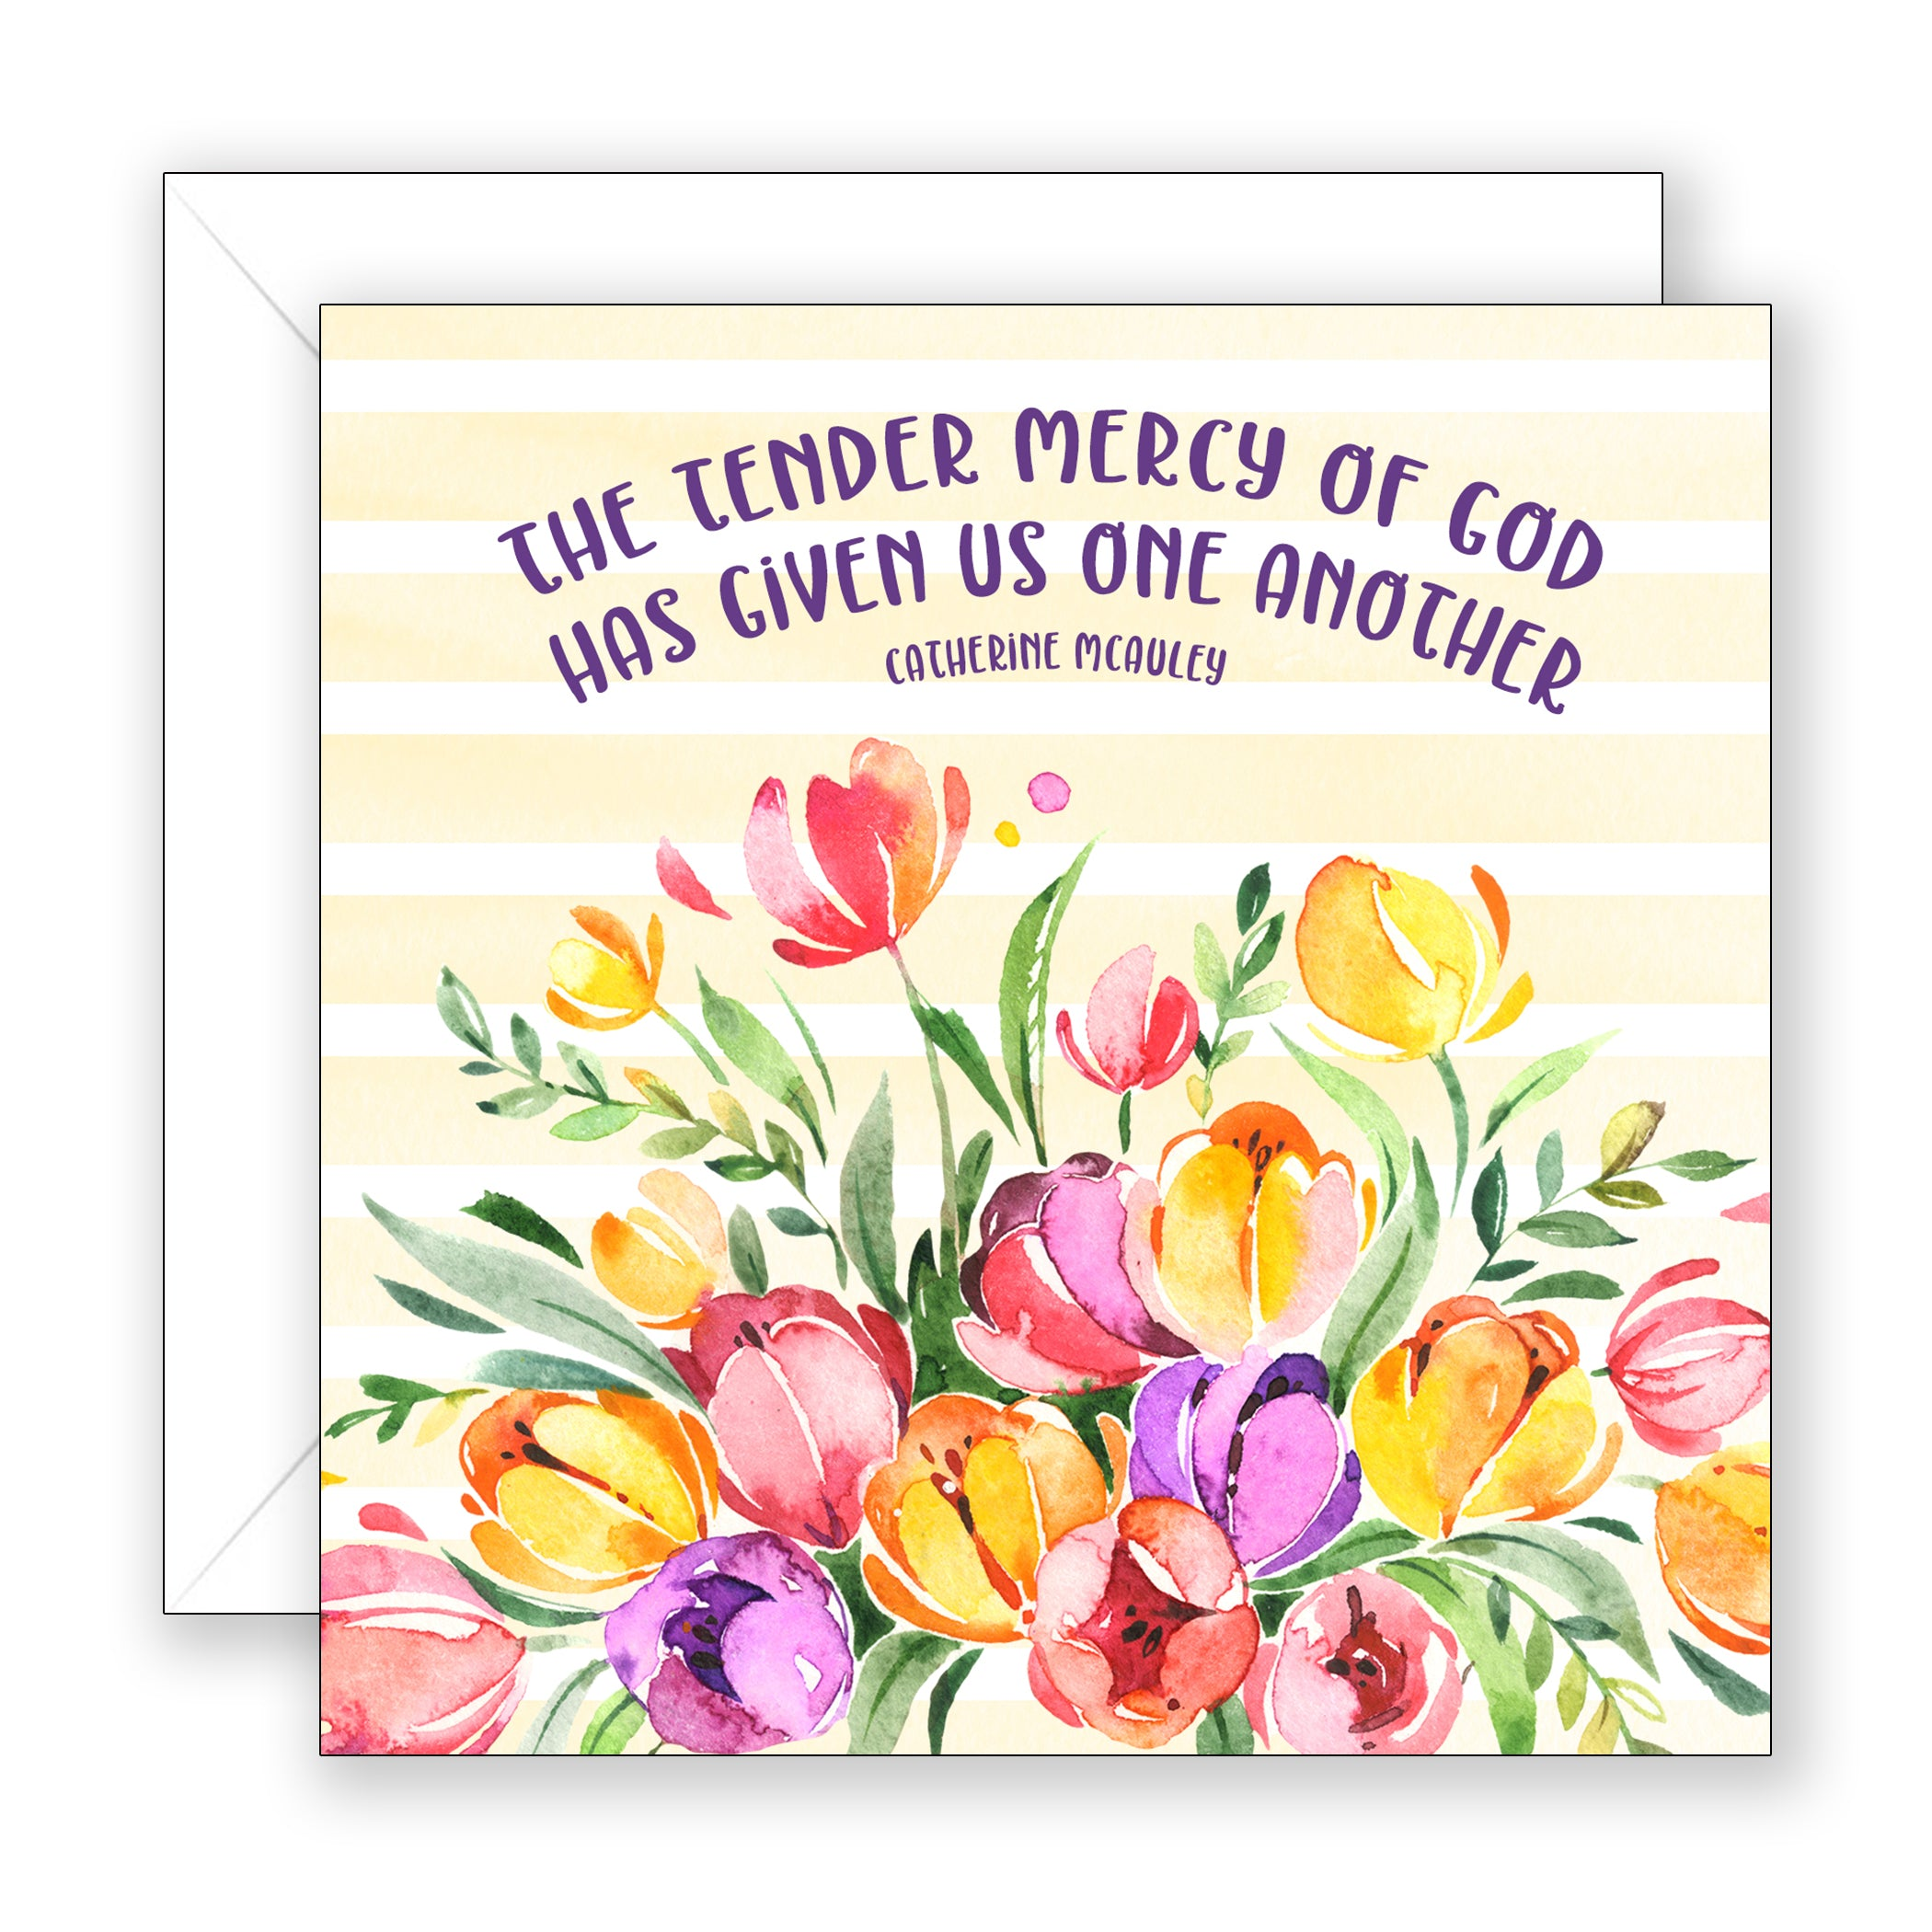 The Tender Mercy - Encouragement Card